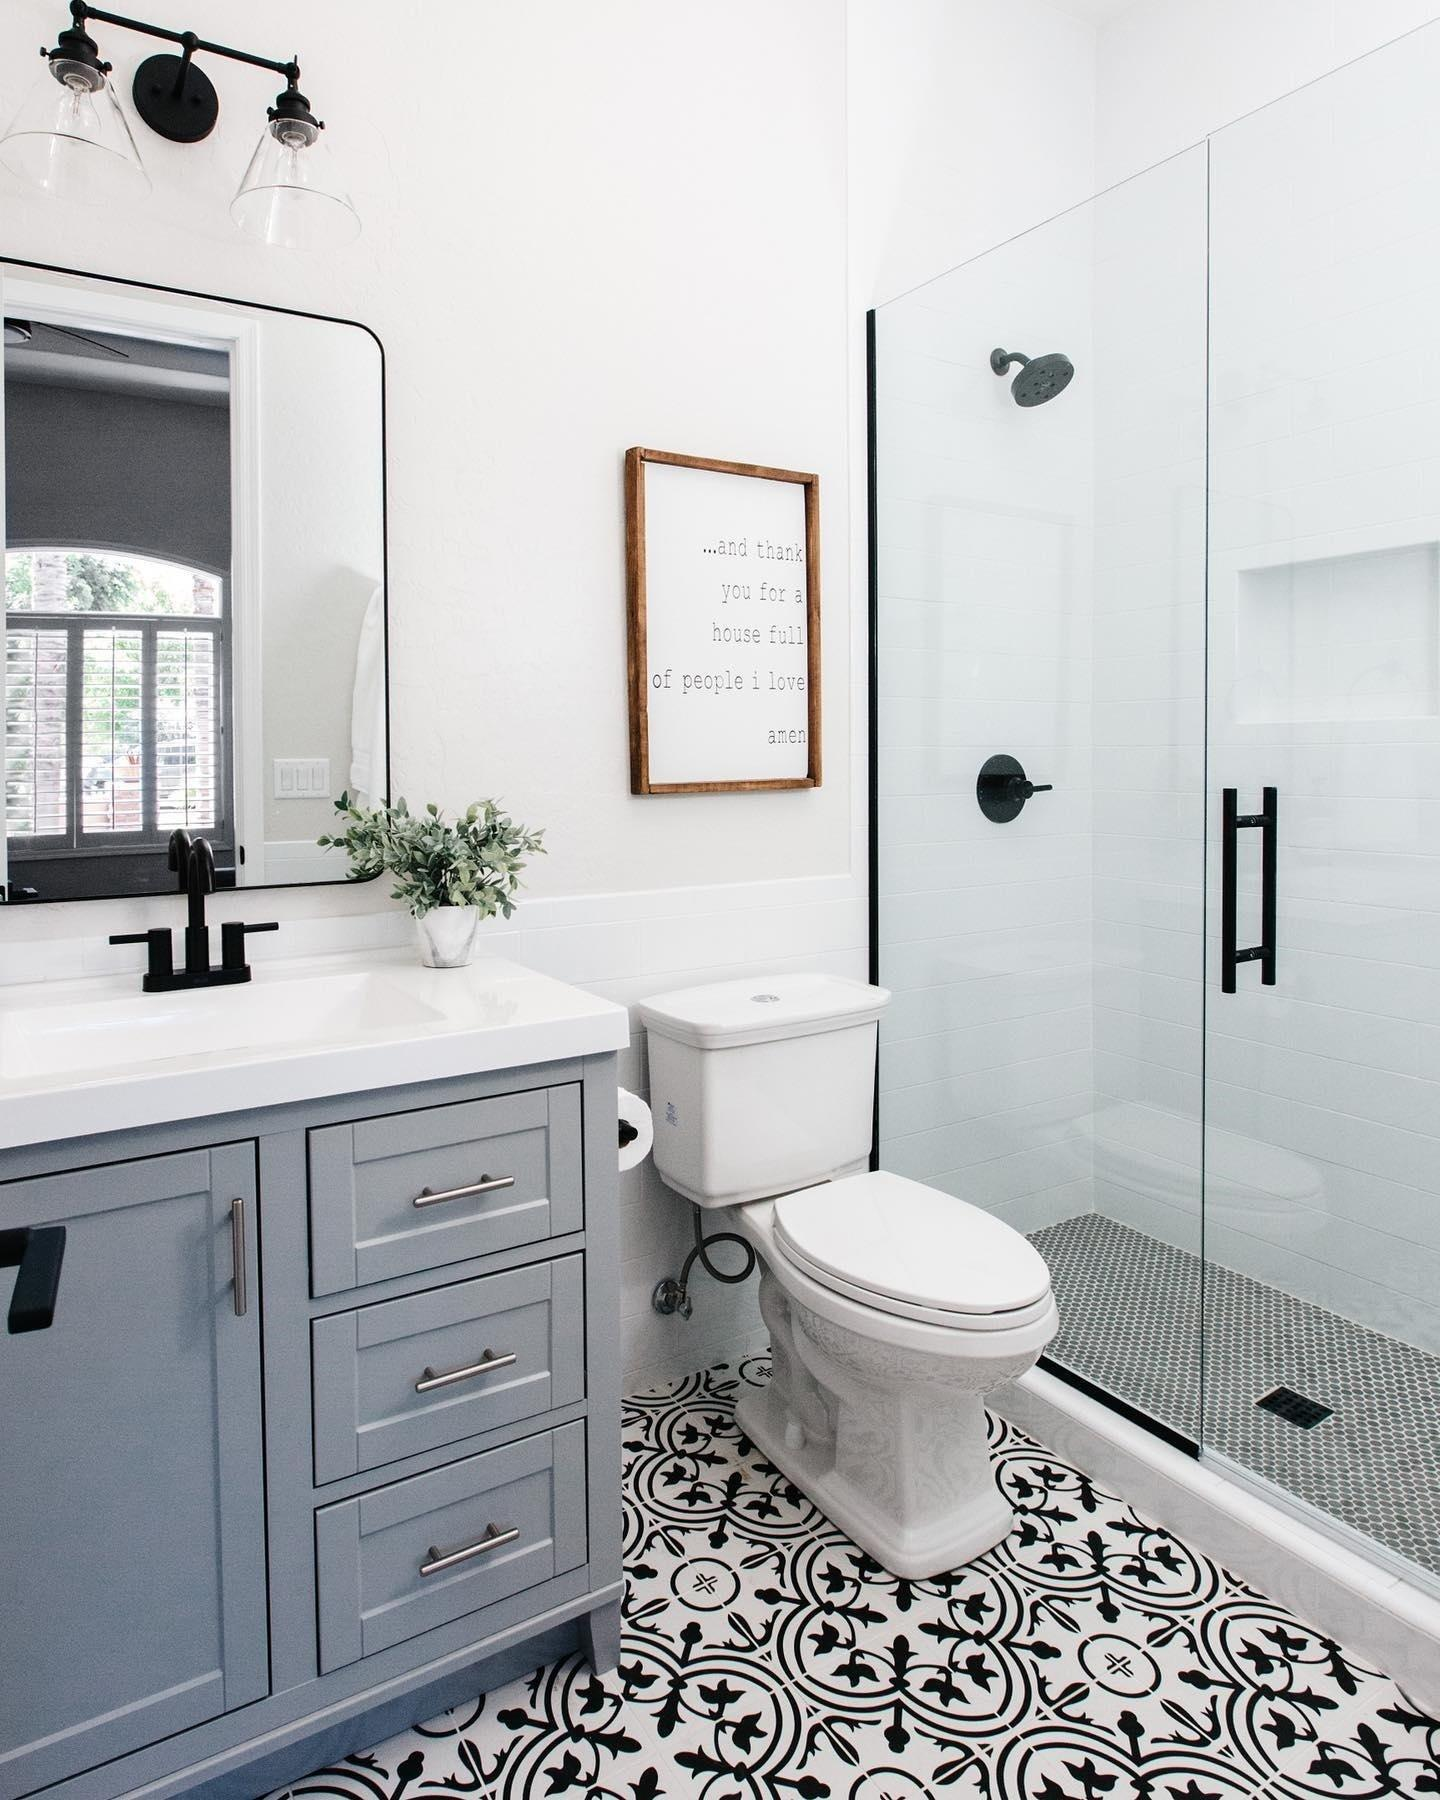 Six Ways To Make Your Small Bathroom Feel Bigger